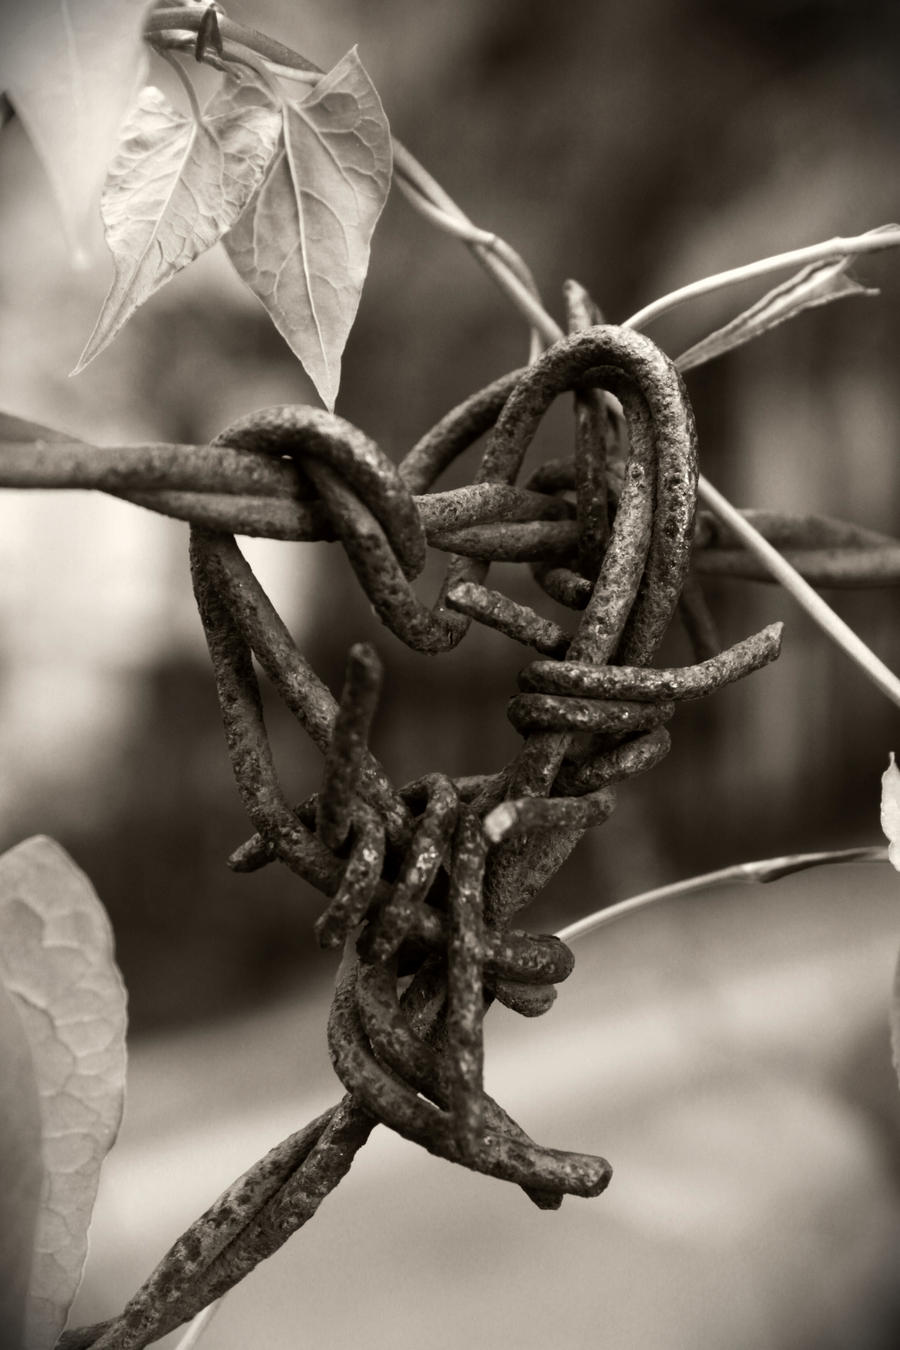 Barbed Wire Heart - Reprise by Januine